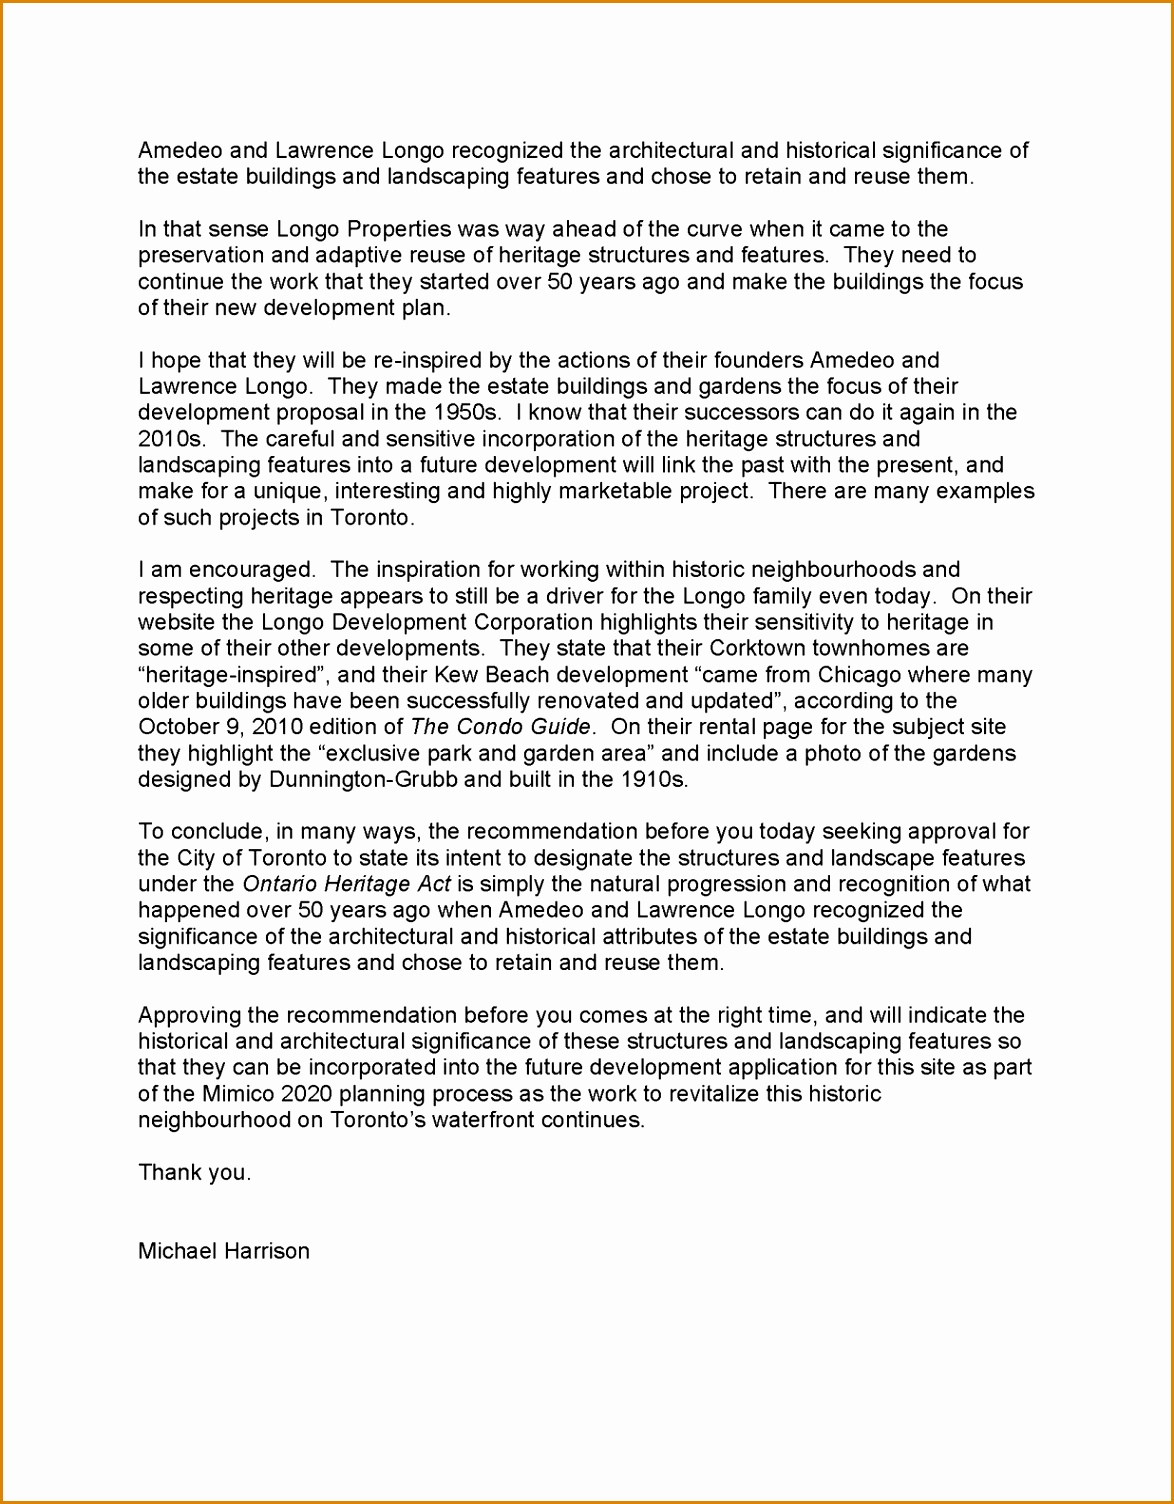 7 Immigration Letter Of Recommendation for Family BestTemplates